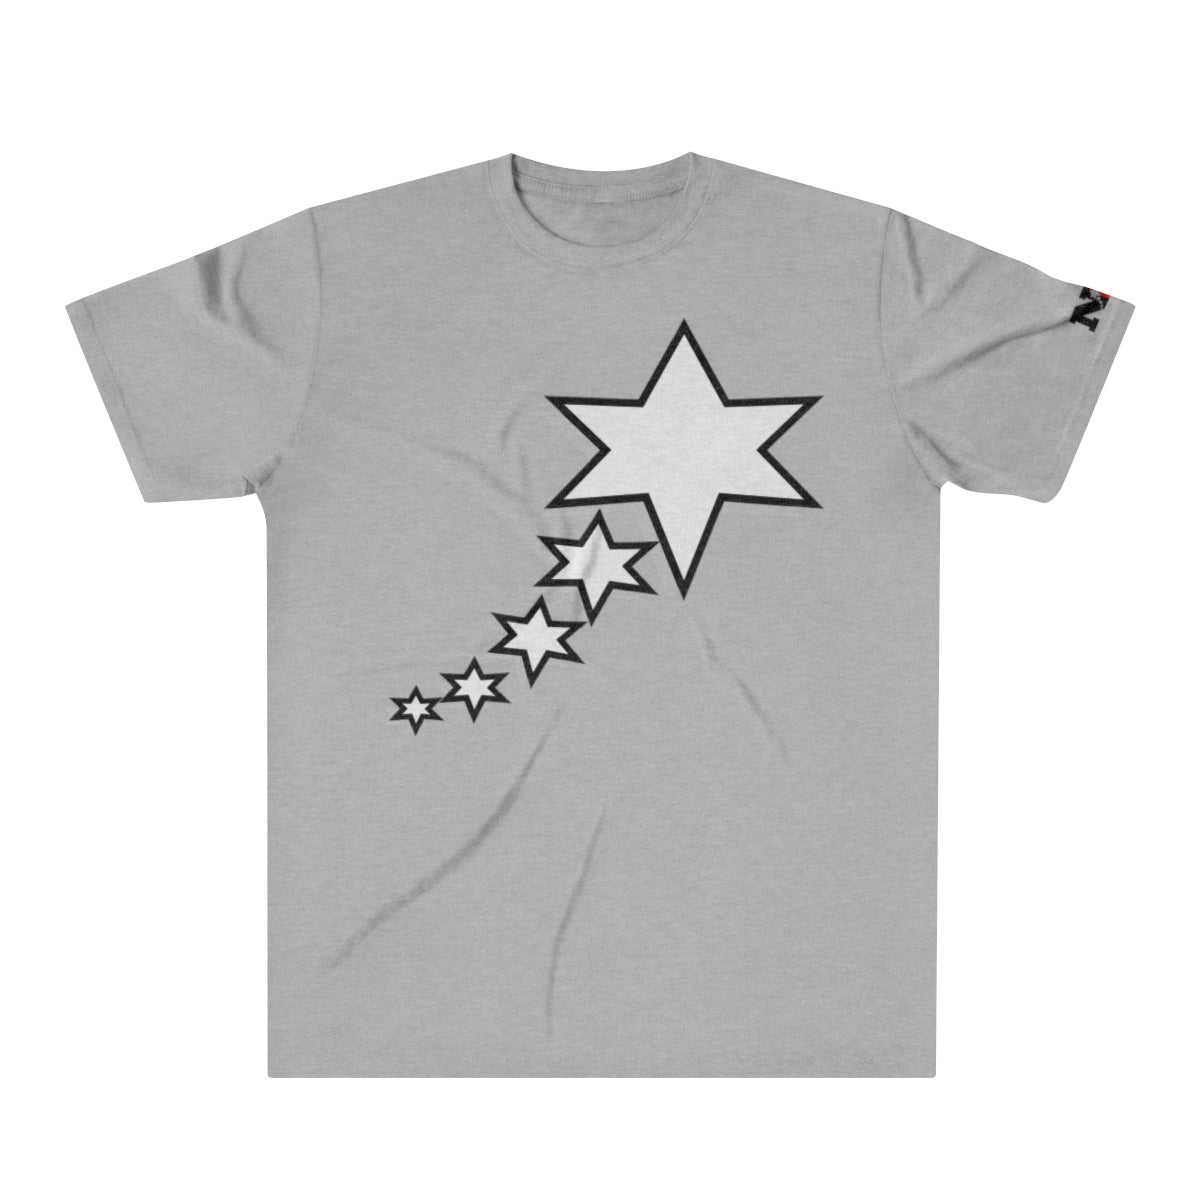 Men's Tri-Blend T-Shirt - 6 Points 5 Stars (White)